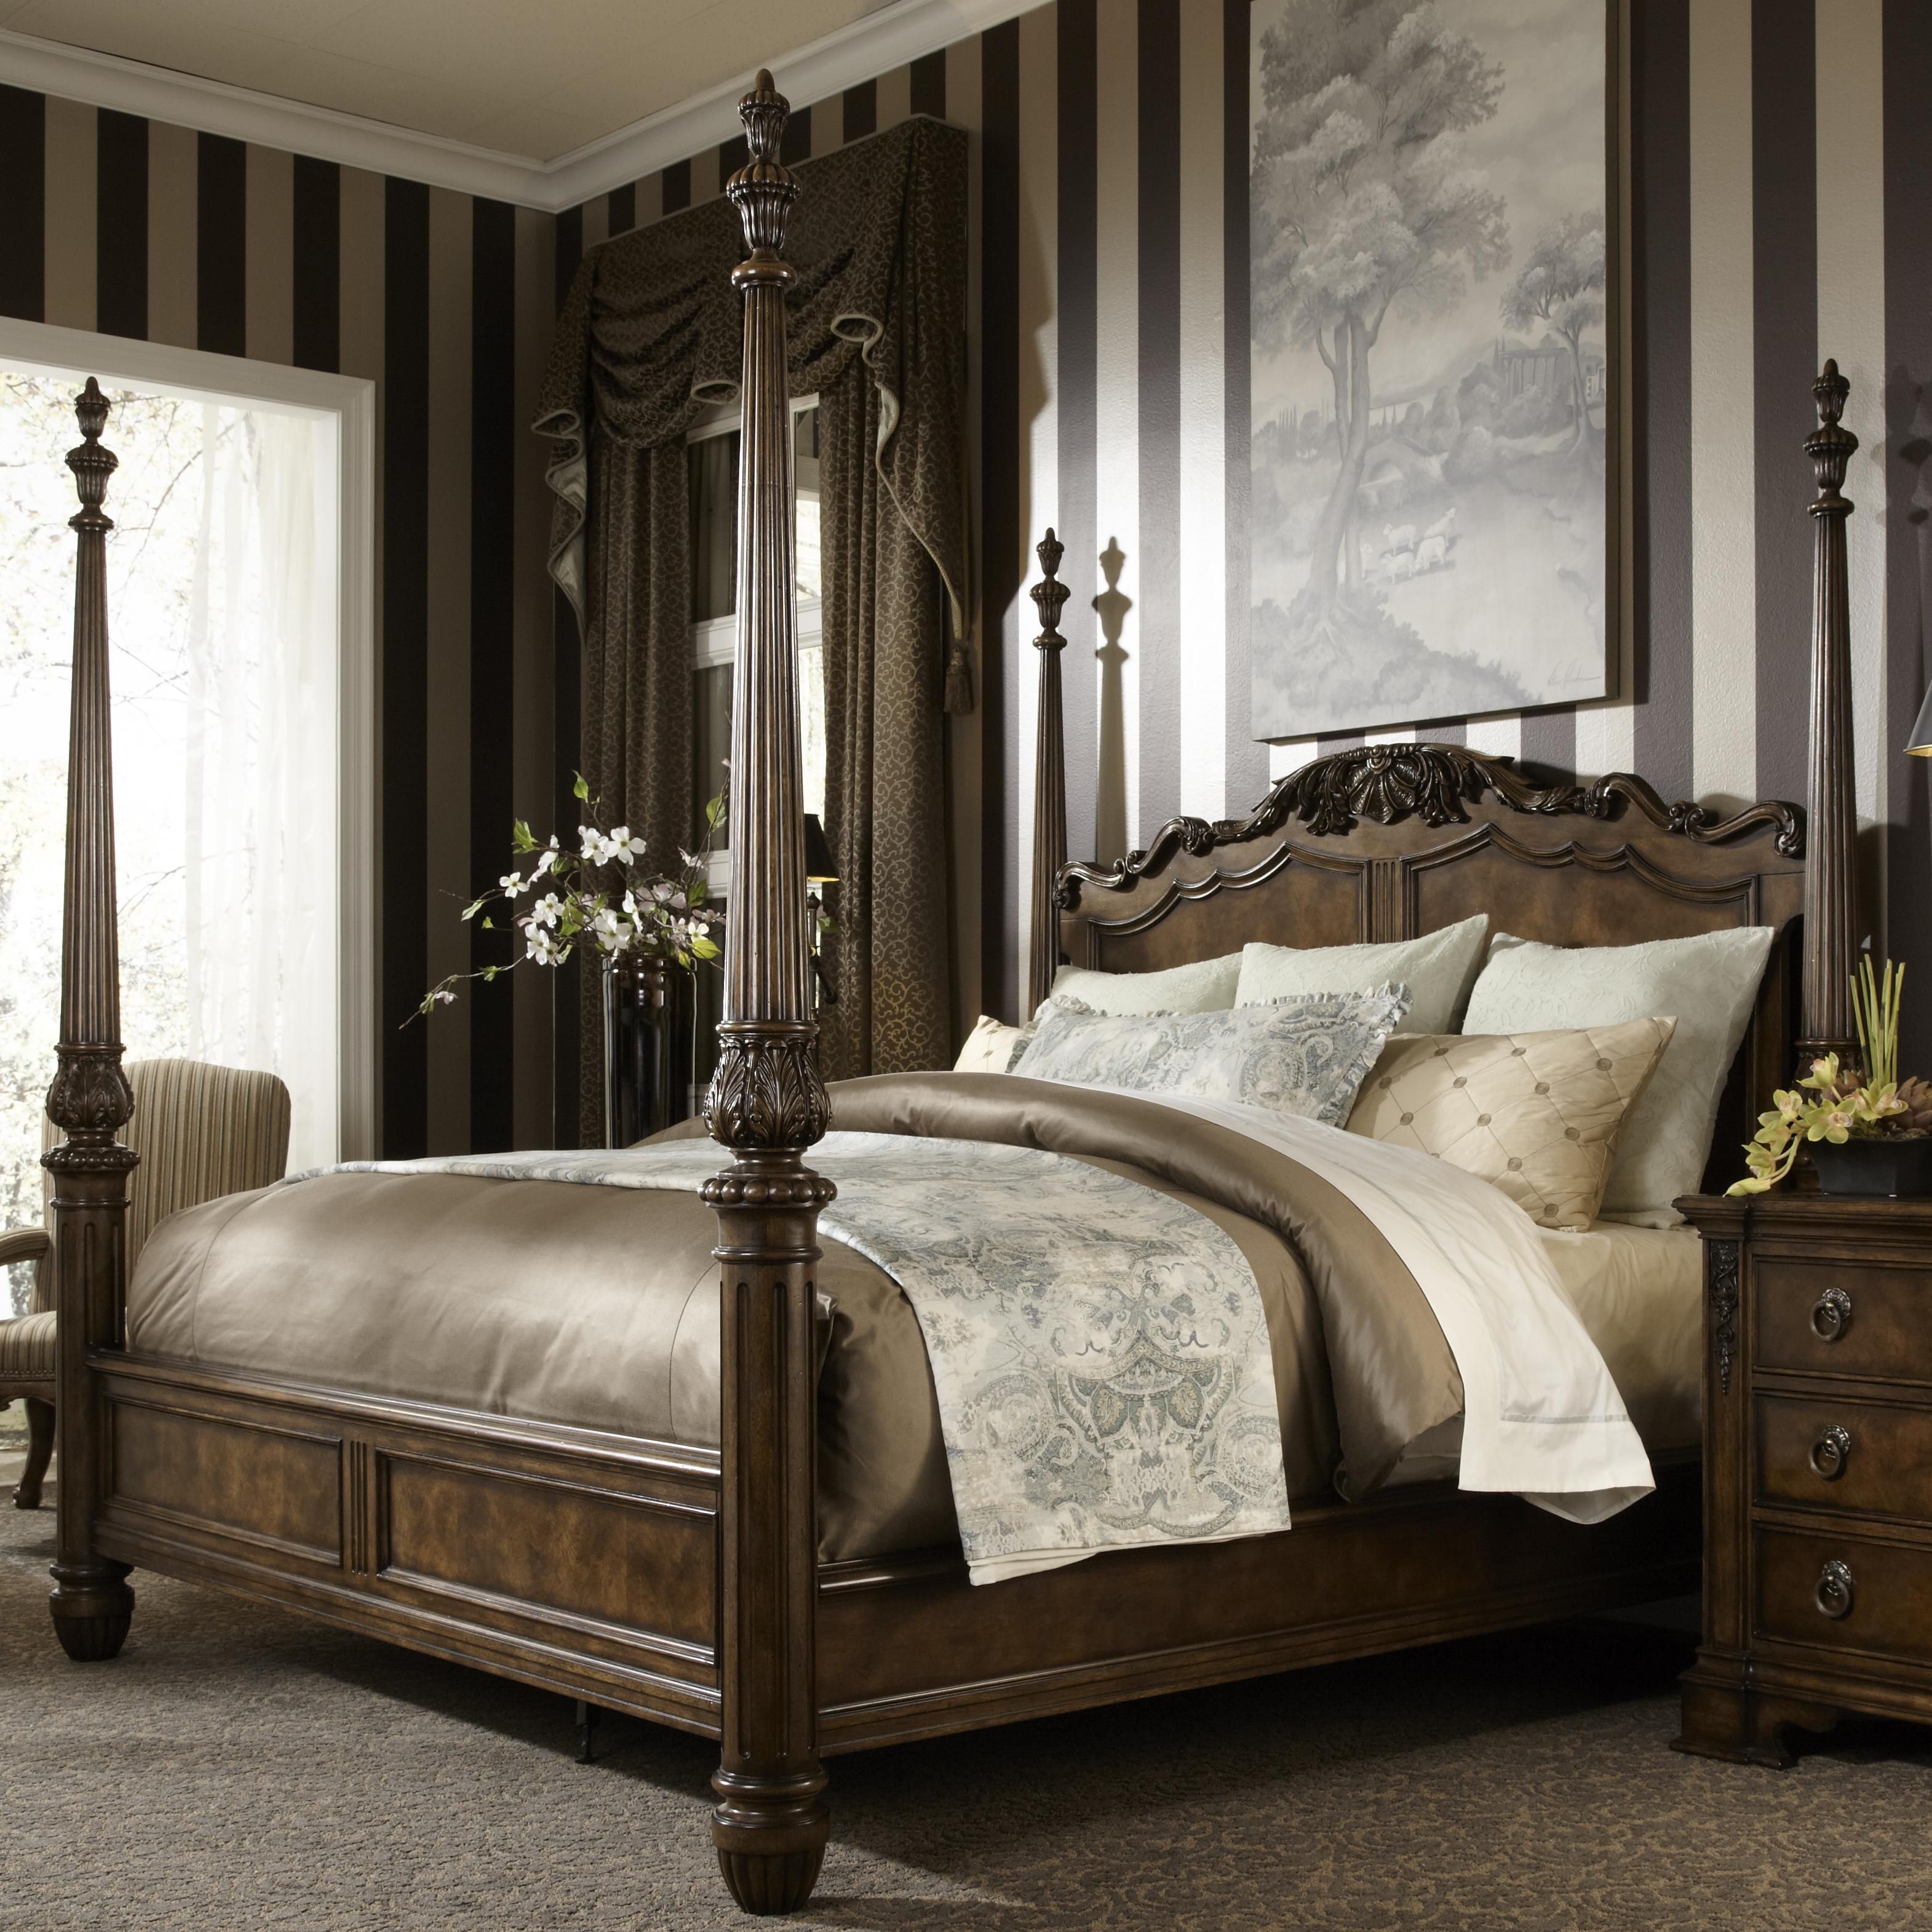 Fine furniture design belvedere king traditional antique style four poster bed jacksonville for King four poster bedroom sets